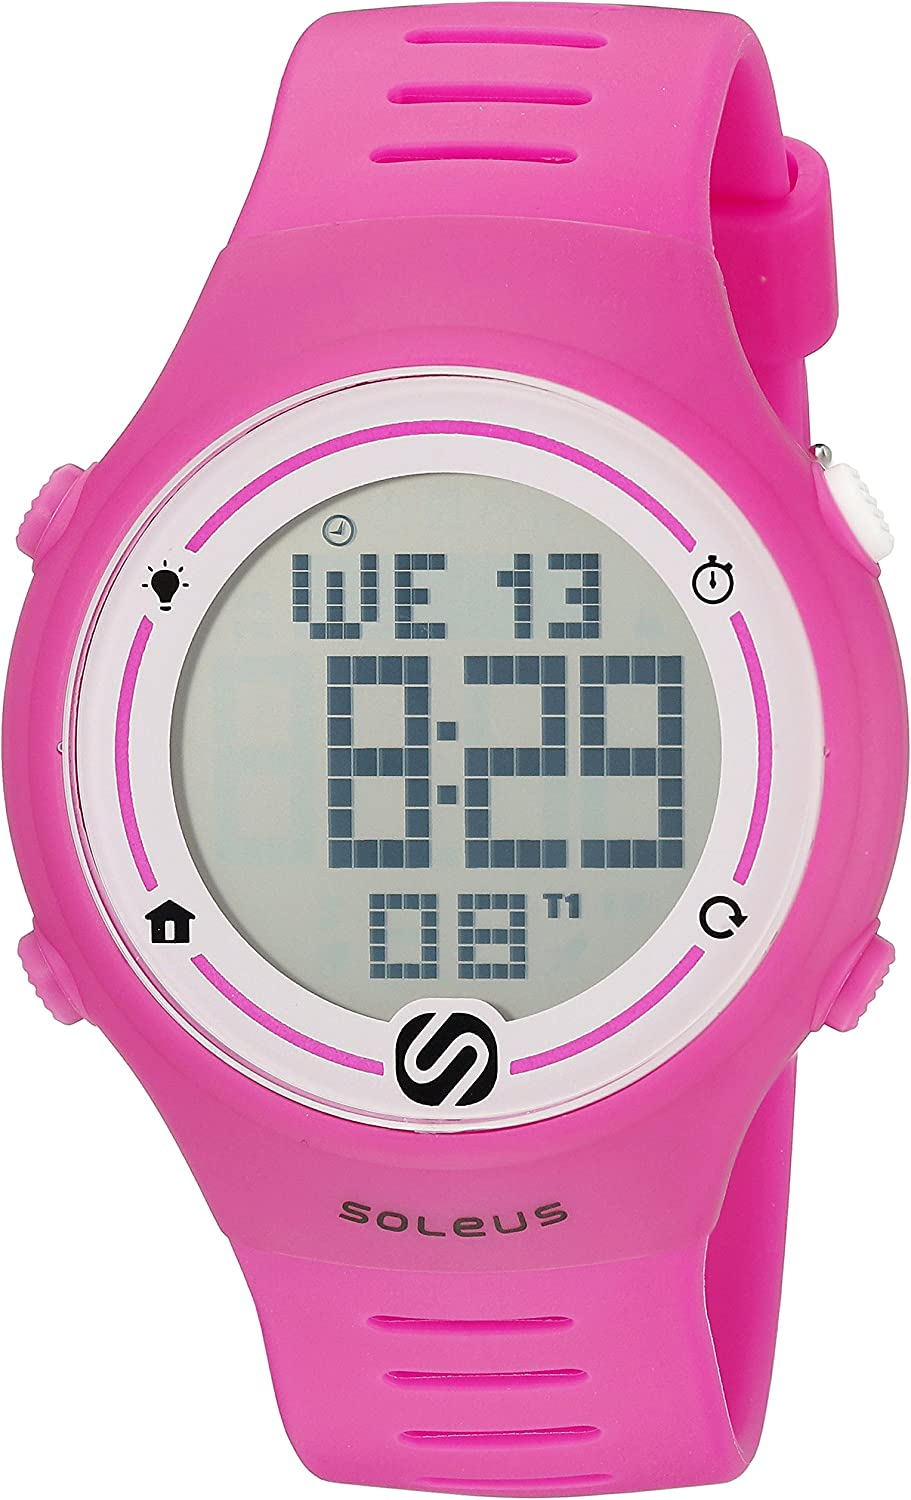 Soleus Sprint Digital Running Watch